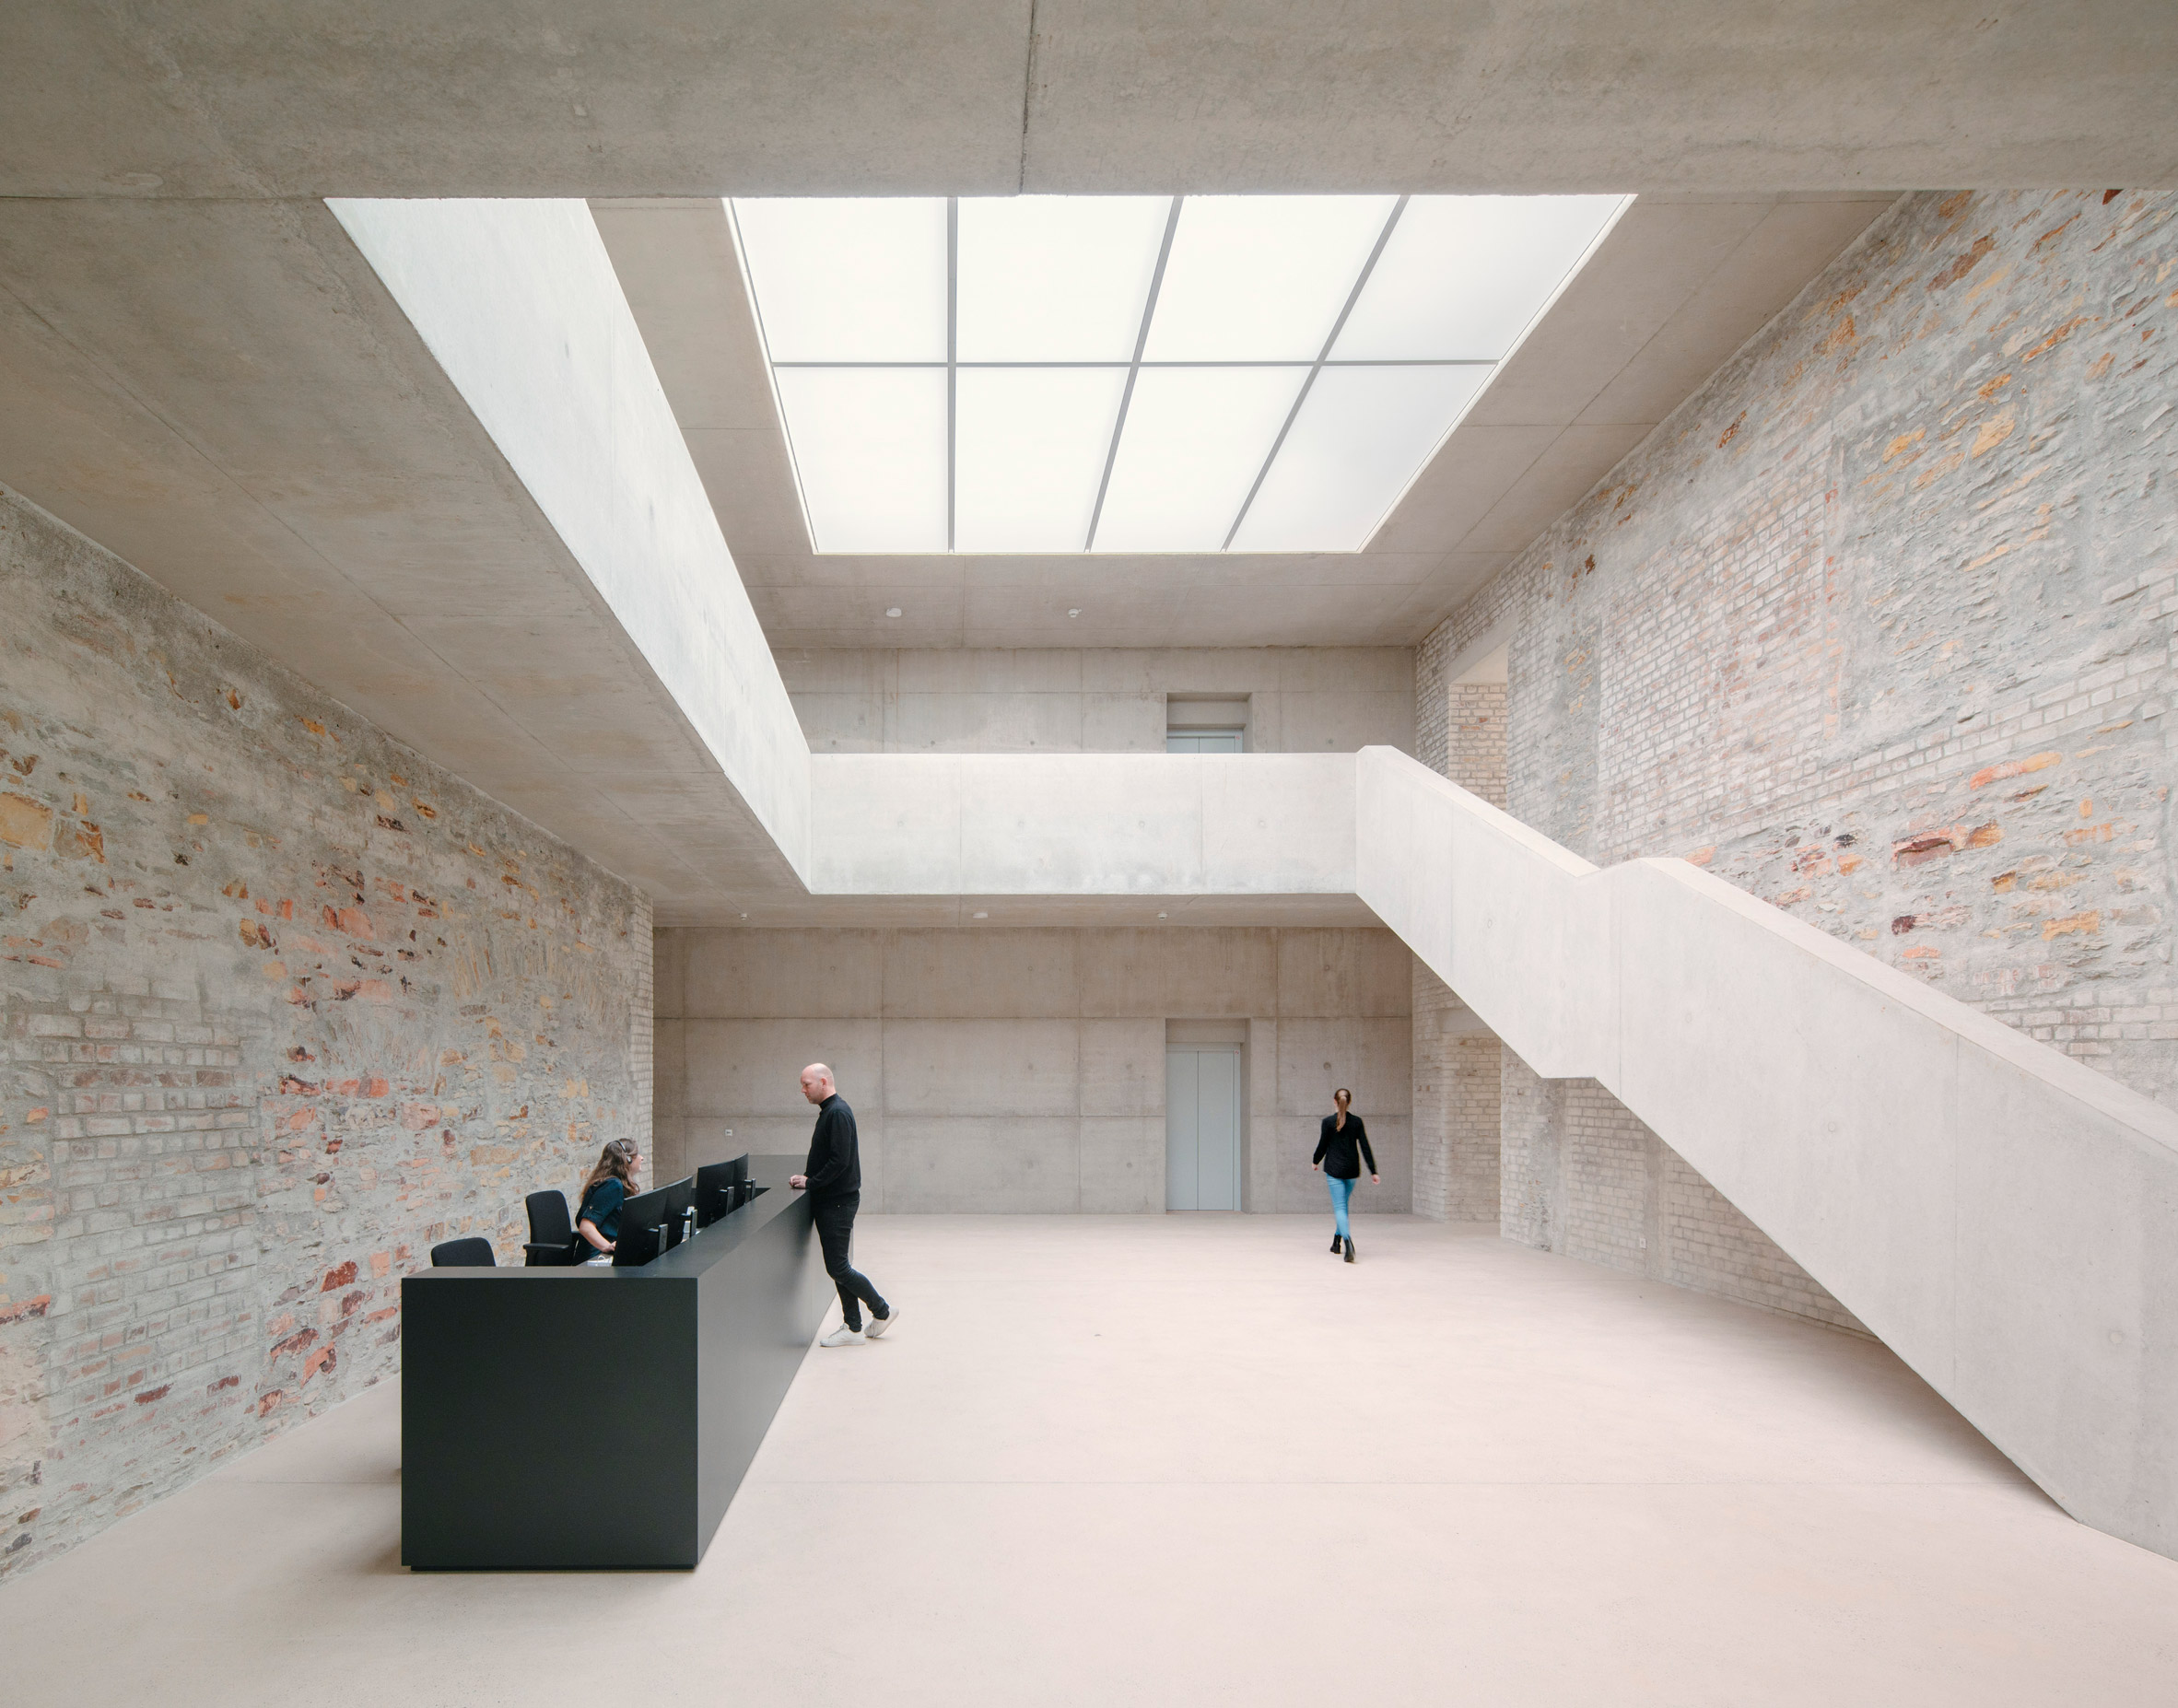 Reception of Jacoby Studios by David Chipperfield Architects